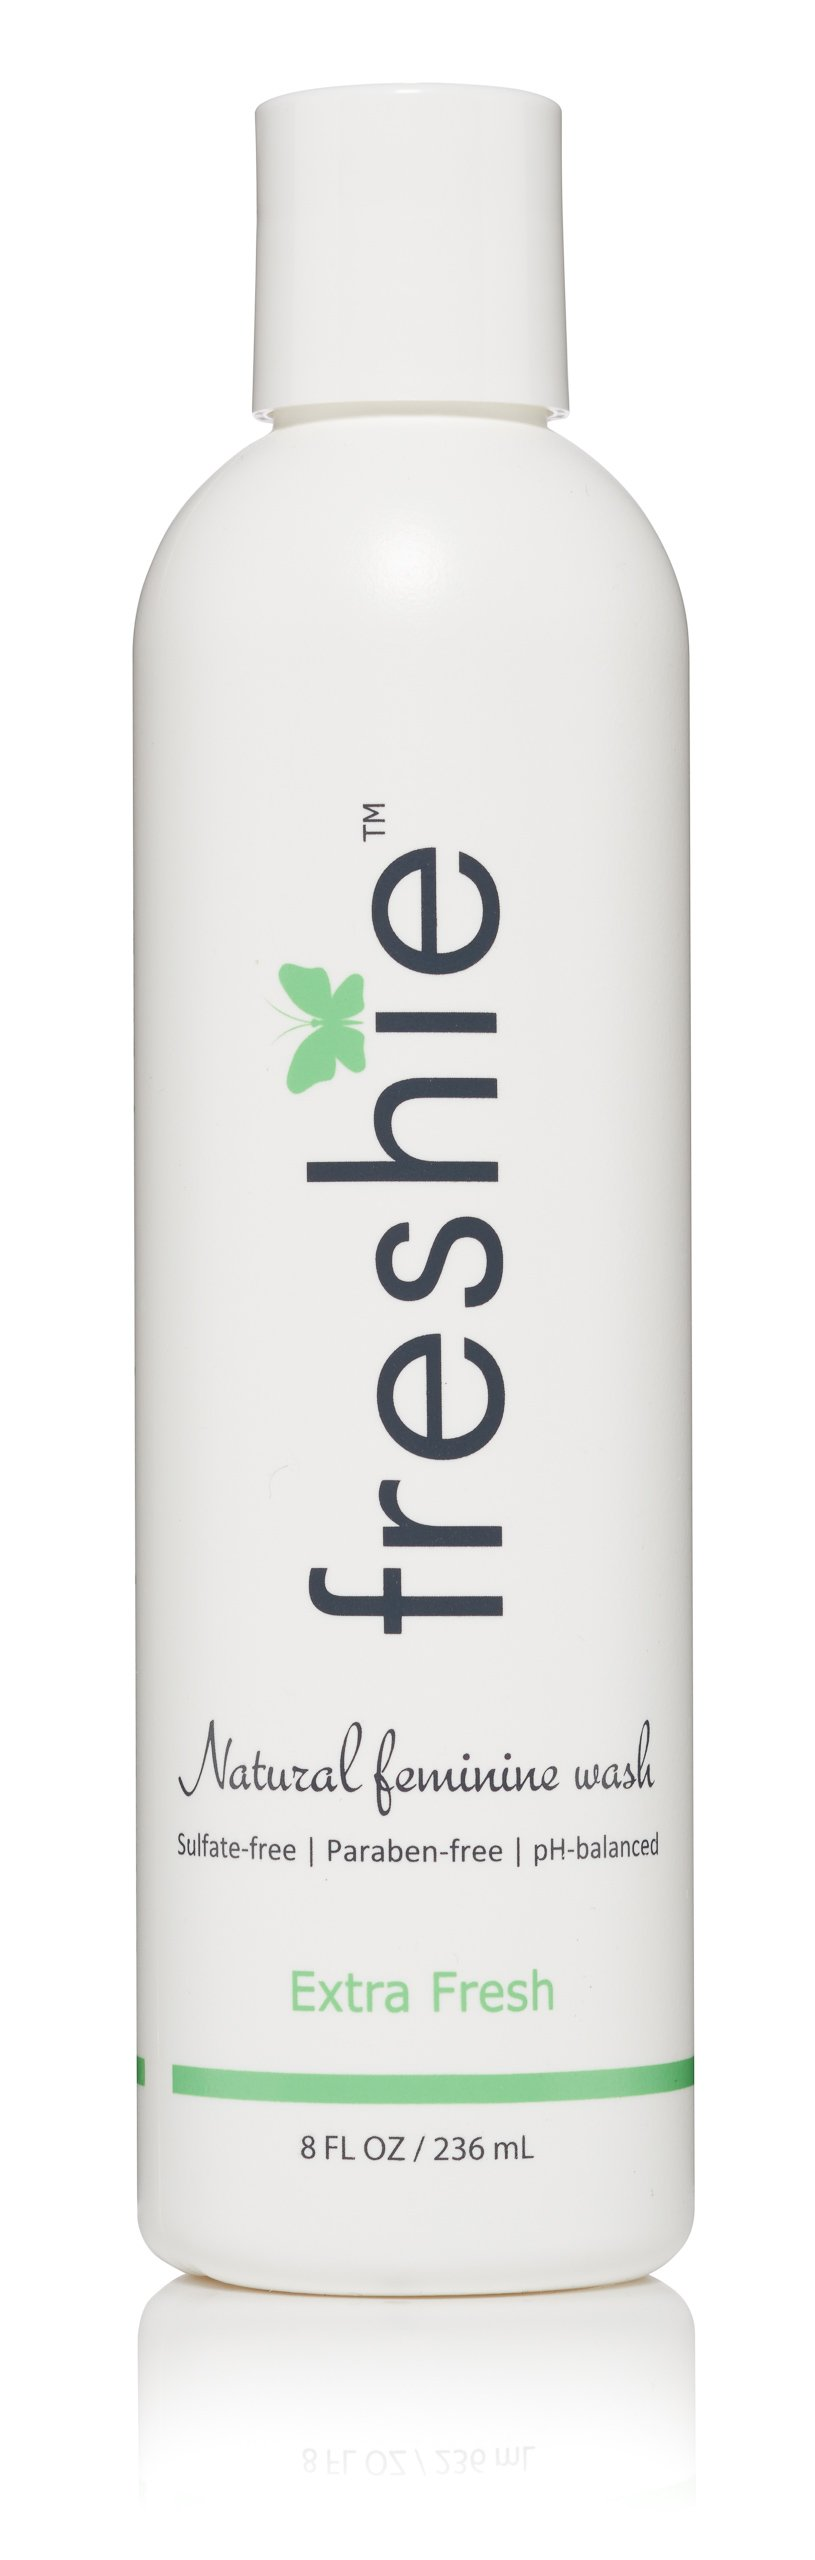 freshie Natural Feminine Wash - Extra Fresh